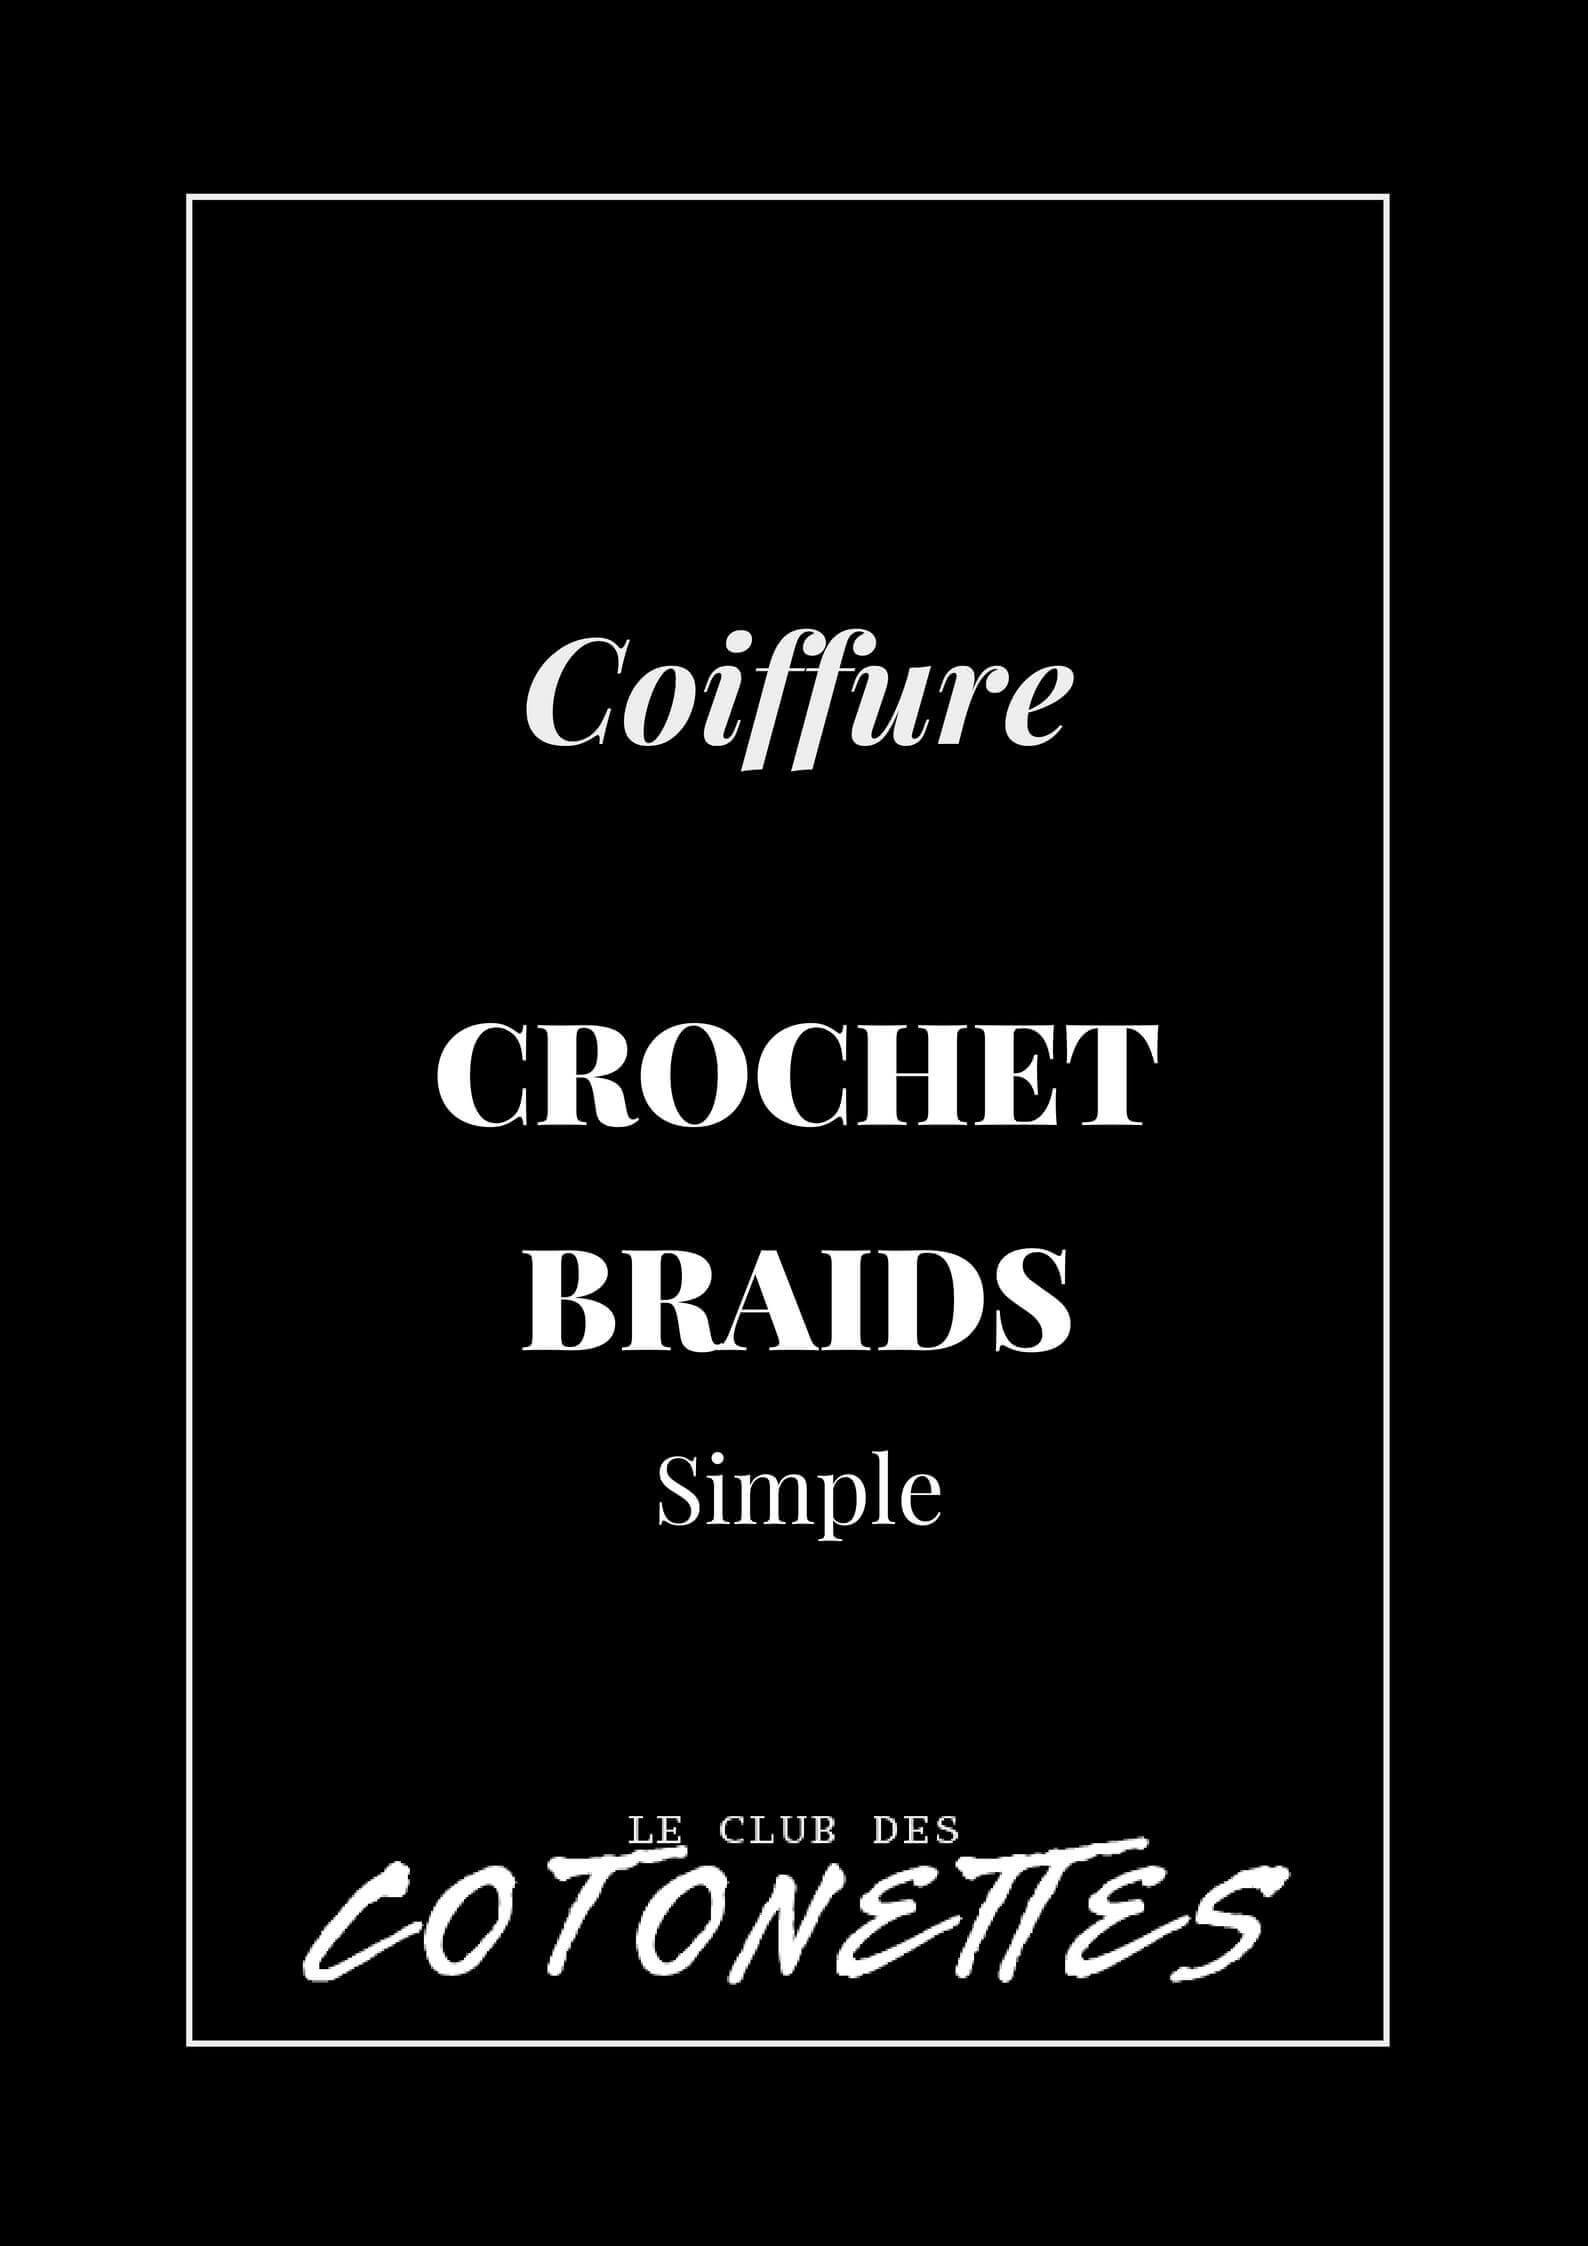 Coiffure - Crochet Braids Simple